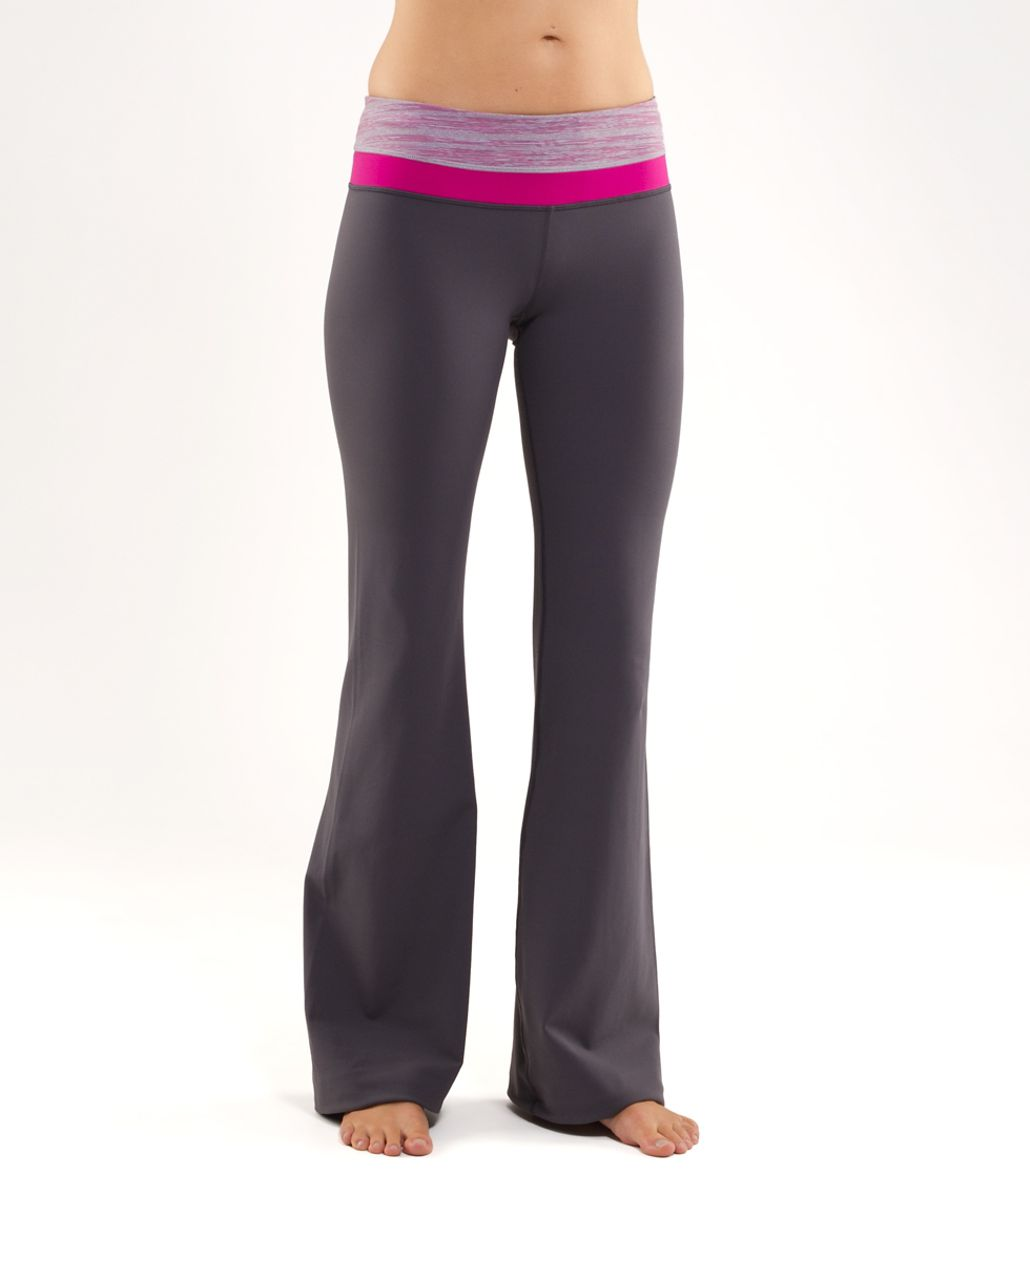 Lululemon Groove Pant (Tall) - Coal /  Muted Mauve Stripes Galore /  Raspberry